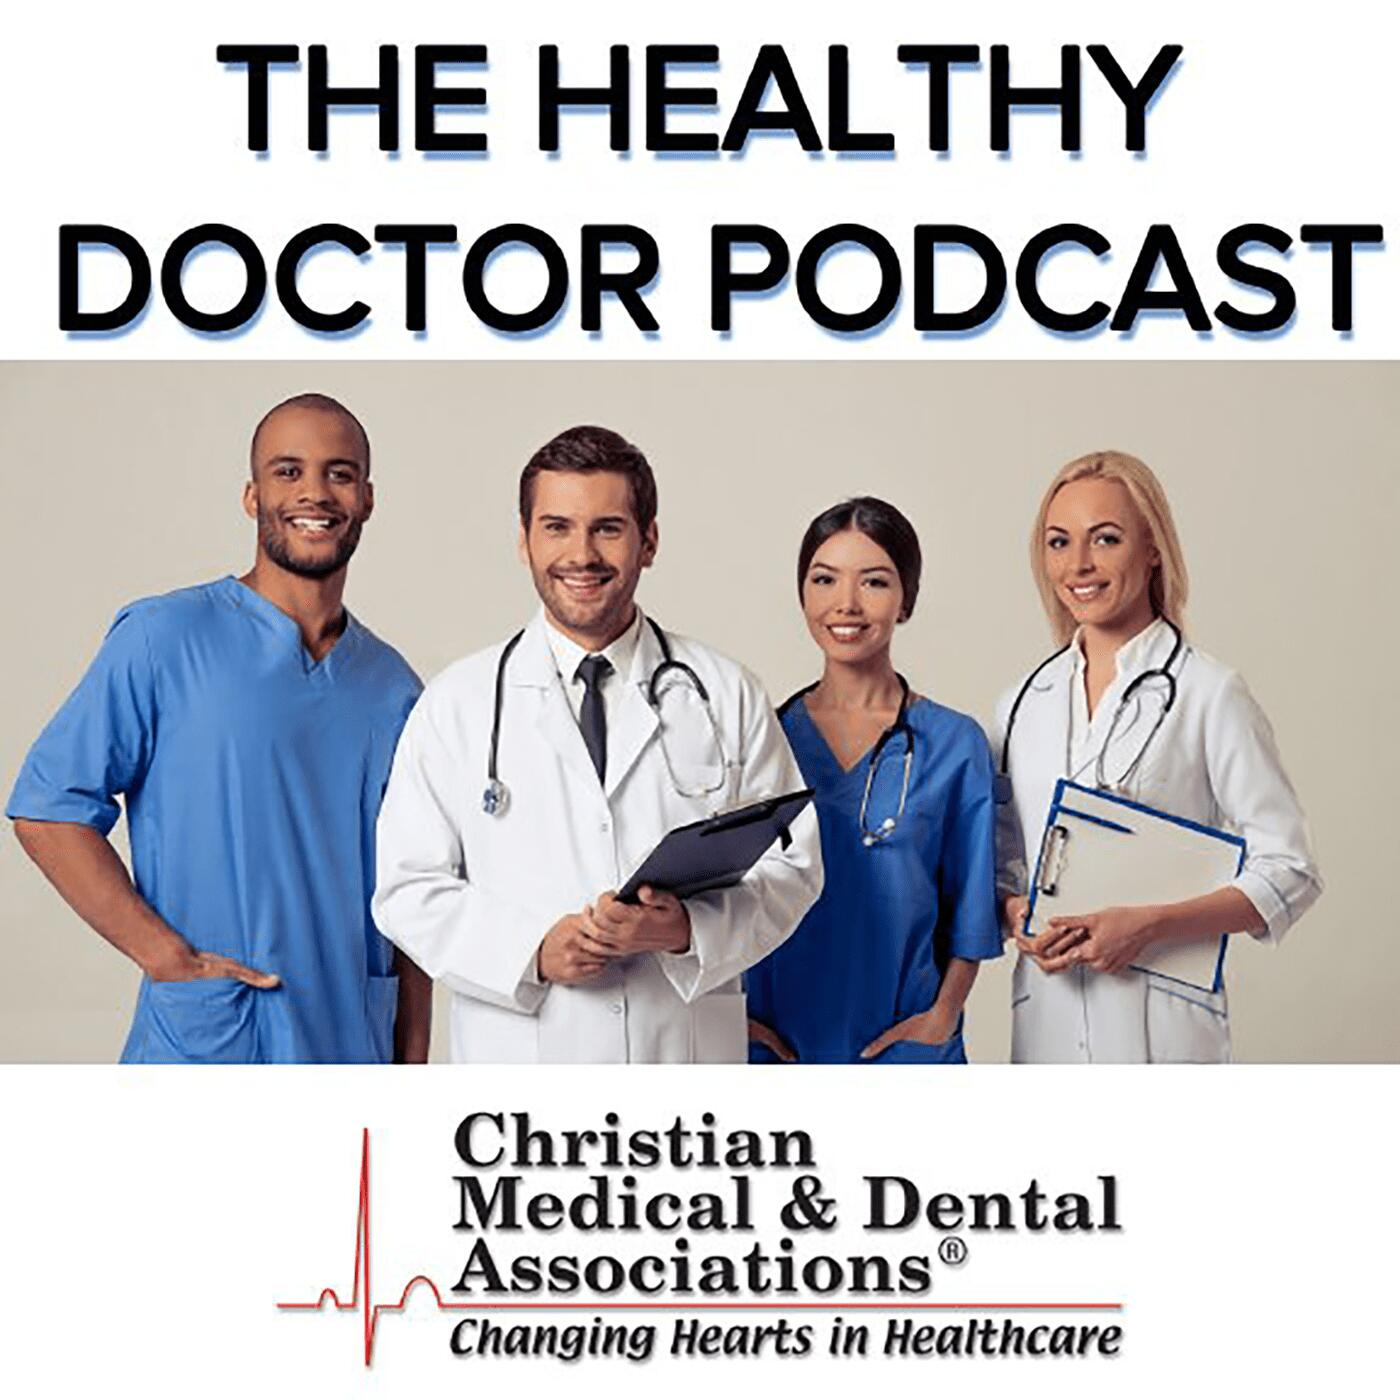 The Healthy Doctor